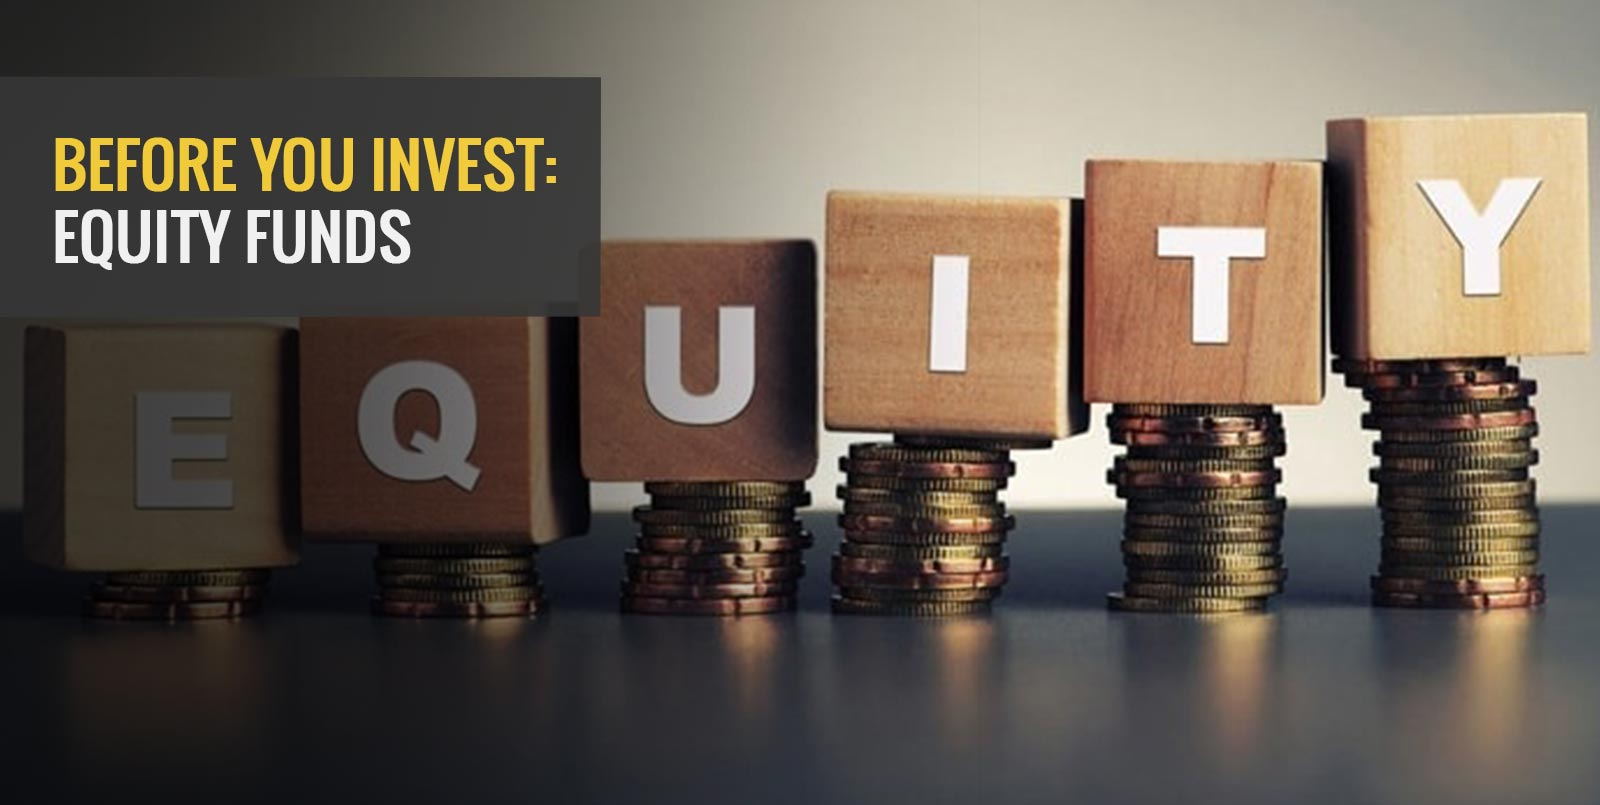 Before You Invest: Equity Funds